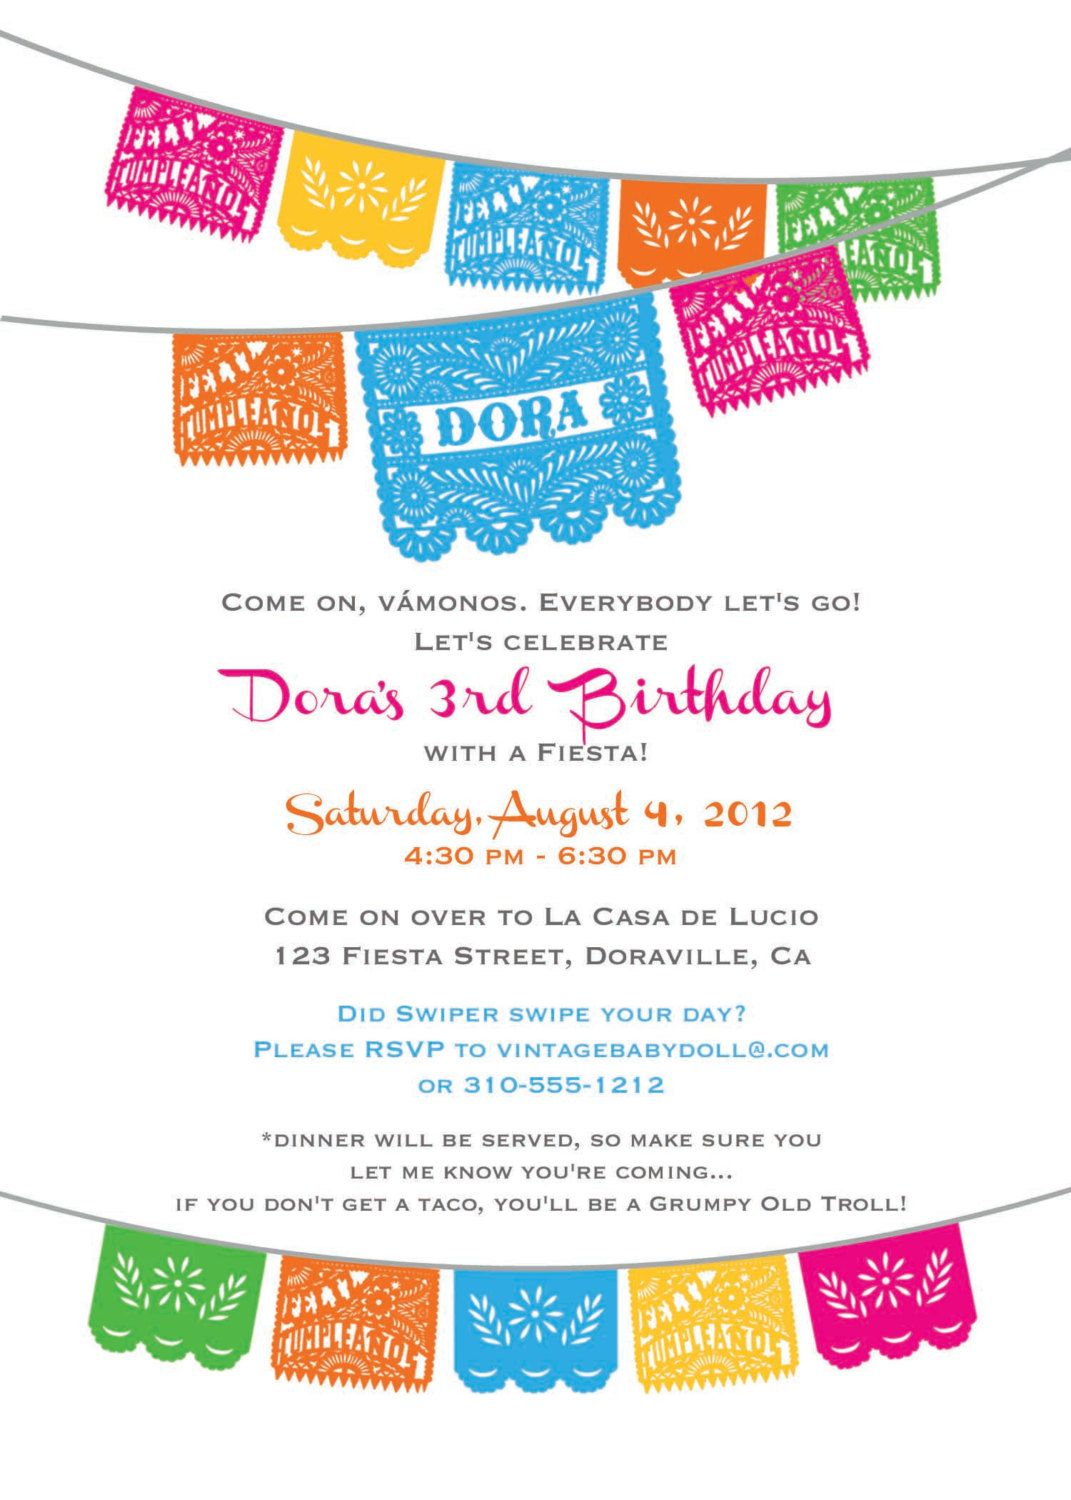 DORA BIRTHDAY Fiesta Invitation cinco de mayo by Vintagebabydoll ...